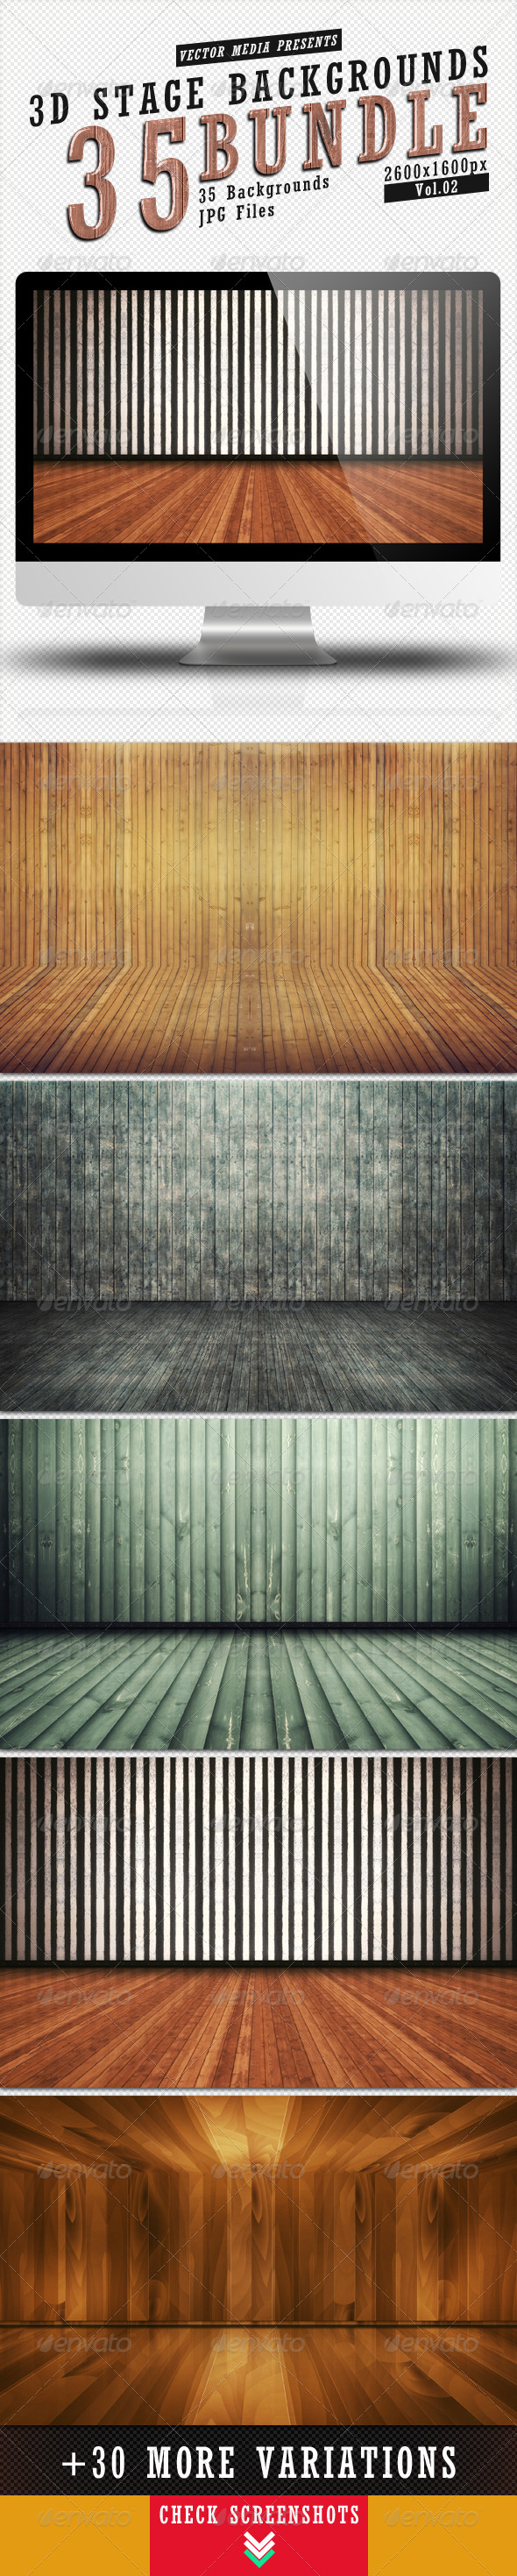 3D Stage Backgrounds - Bundle Vol.2 - 3D Backgrounds